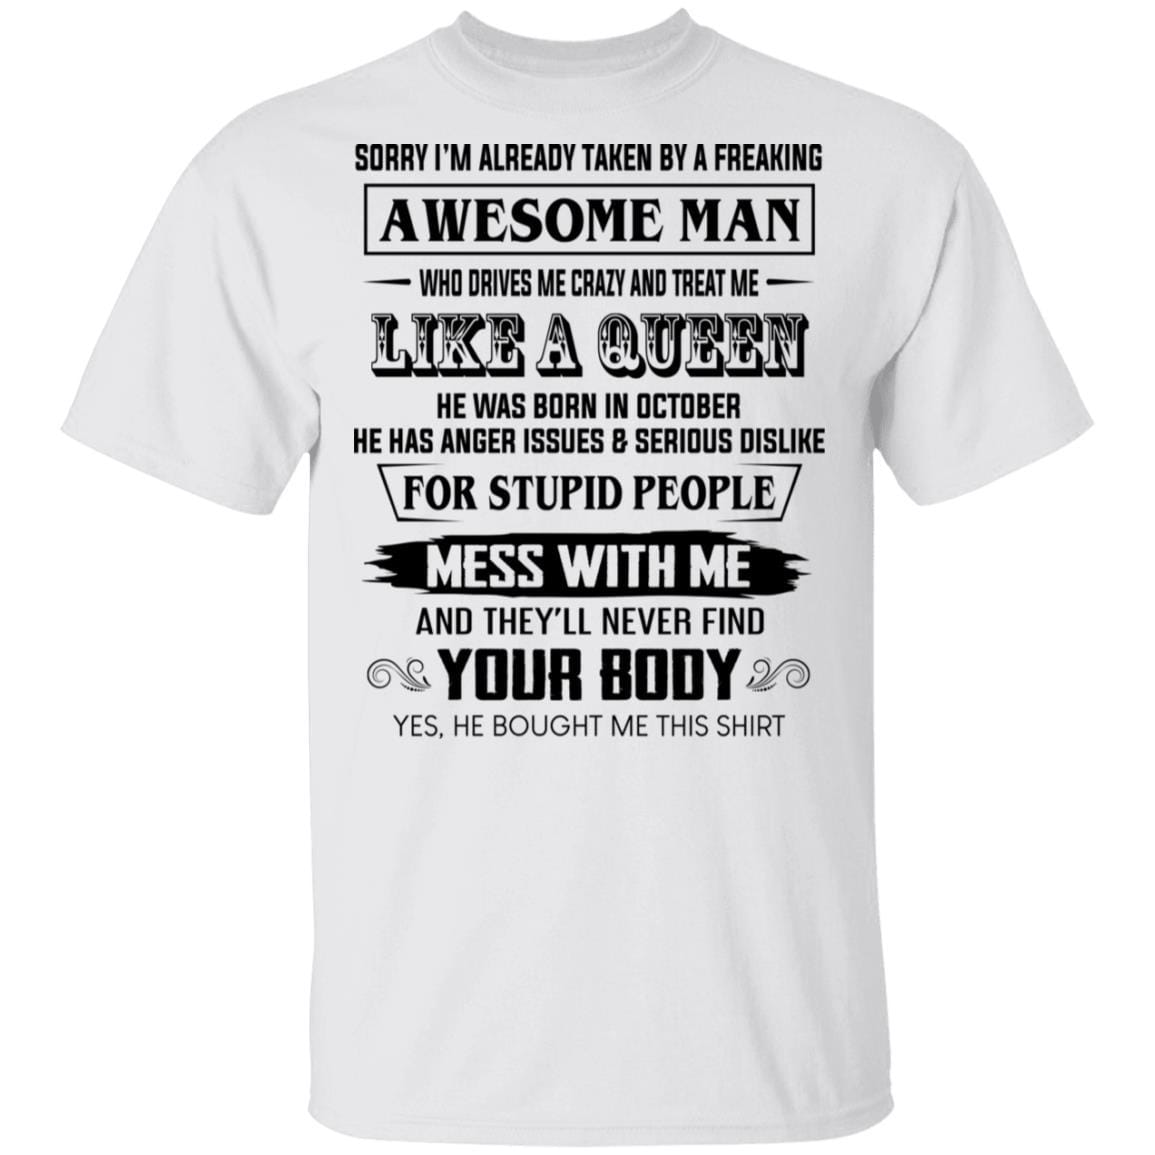 I'm Already Taken By A Freaking Awesome Man Who Drives Me Crazy And Born In October T-Shirts, Hoodies 1049-9974-86602242-48300 - Tee Ript